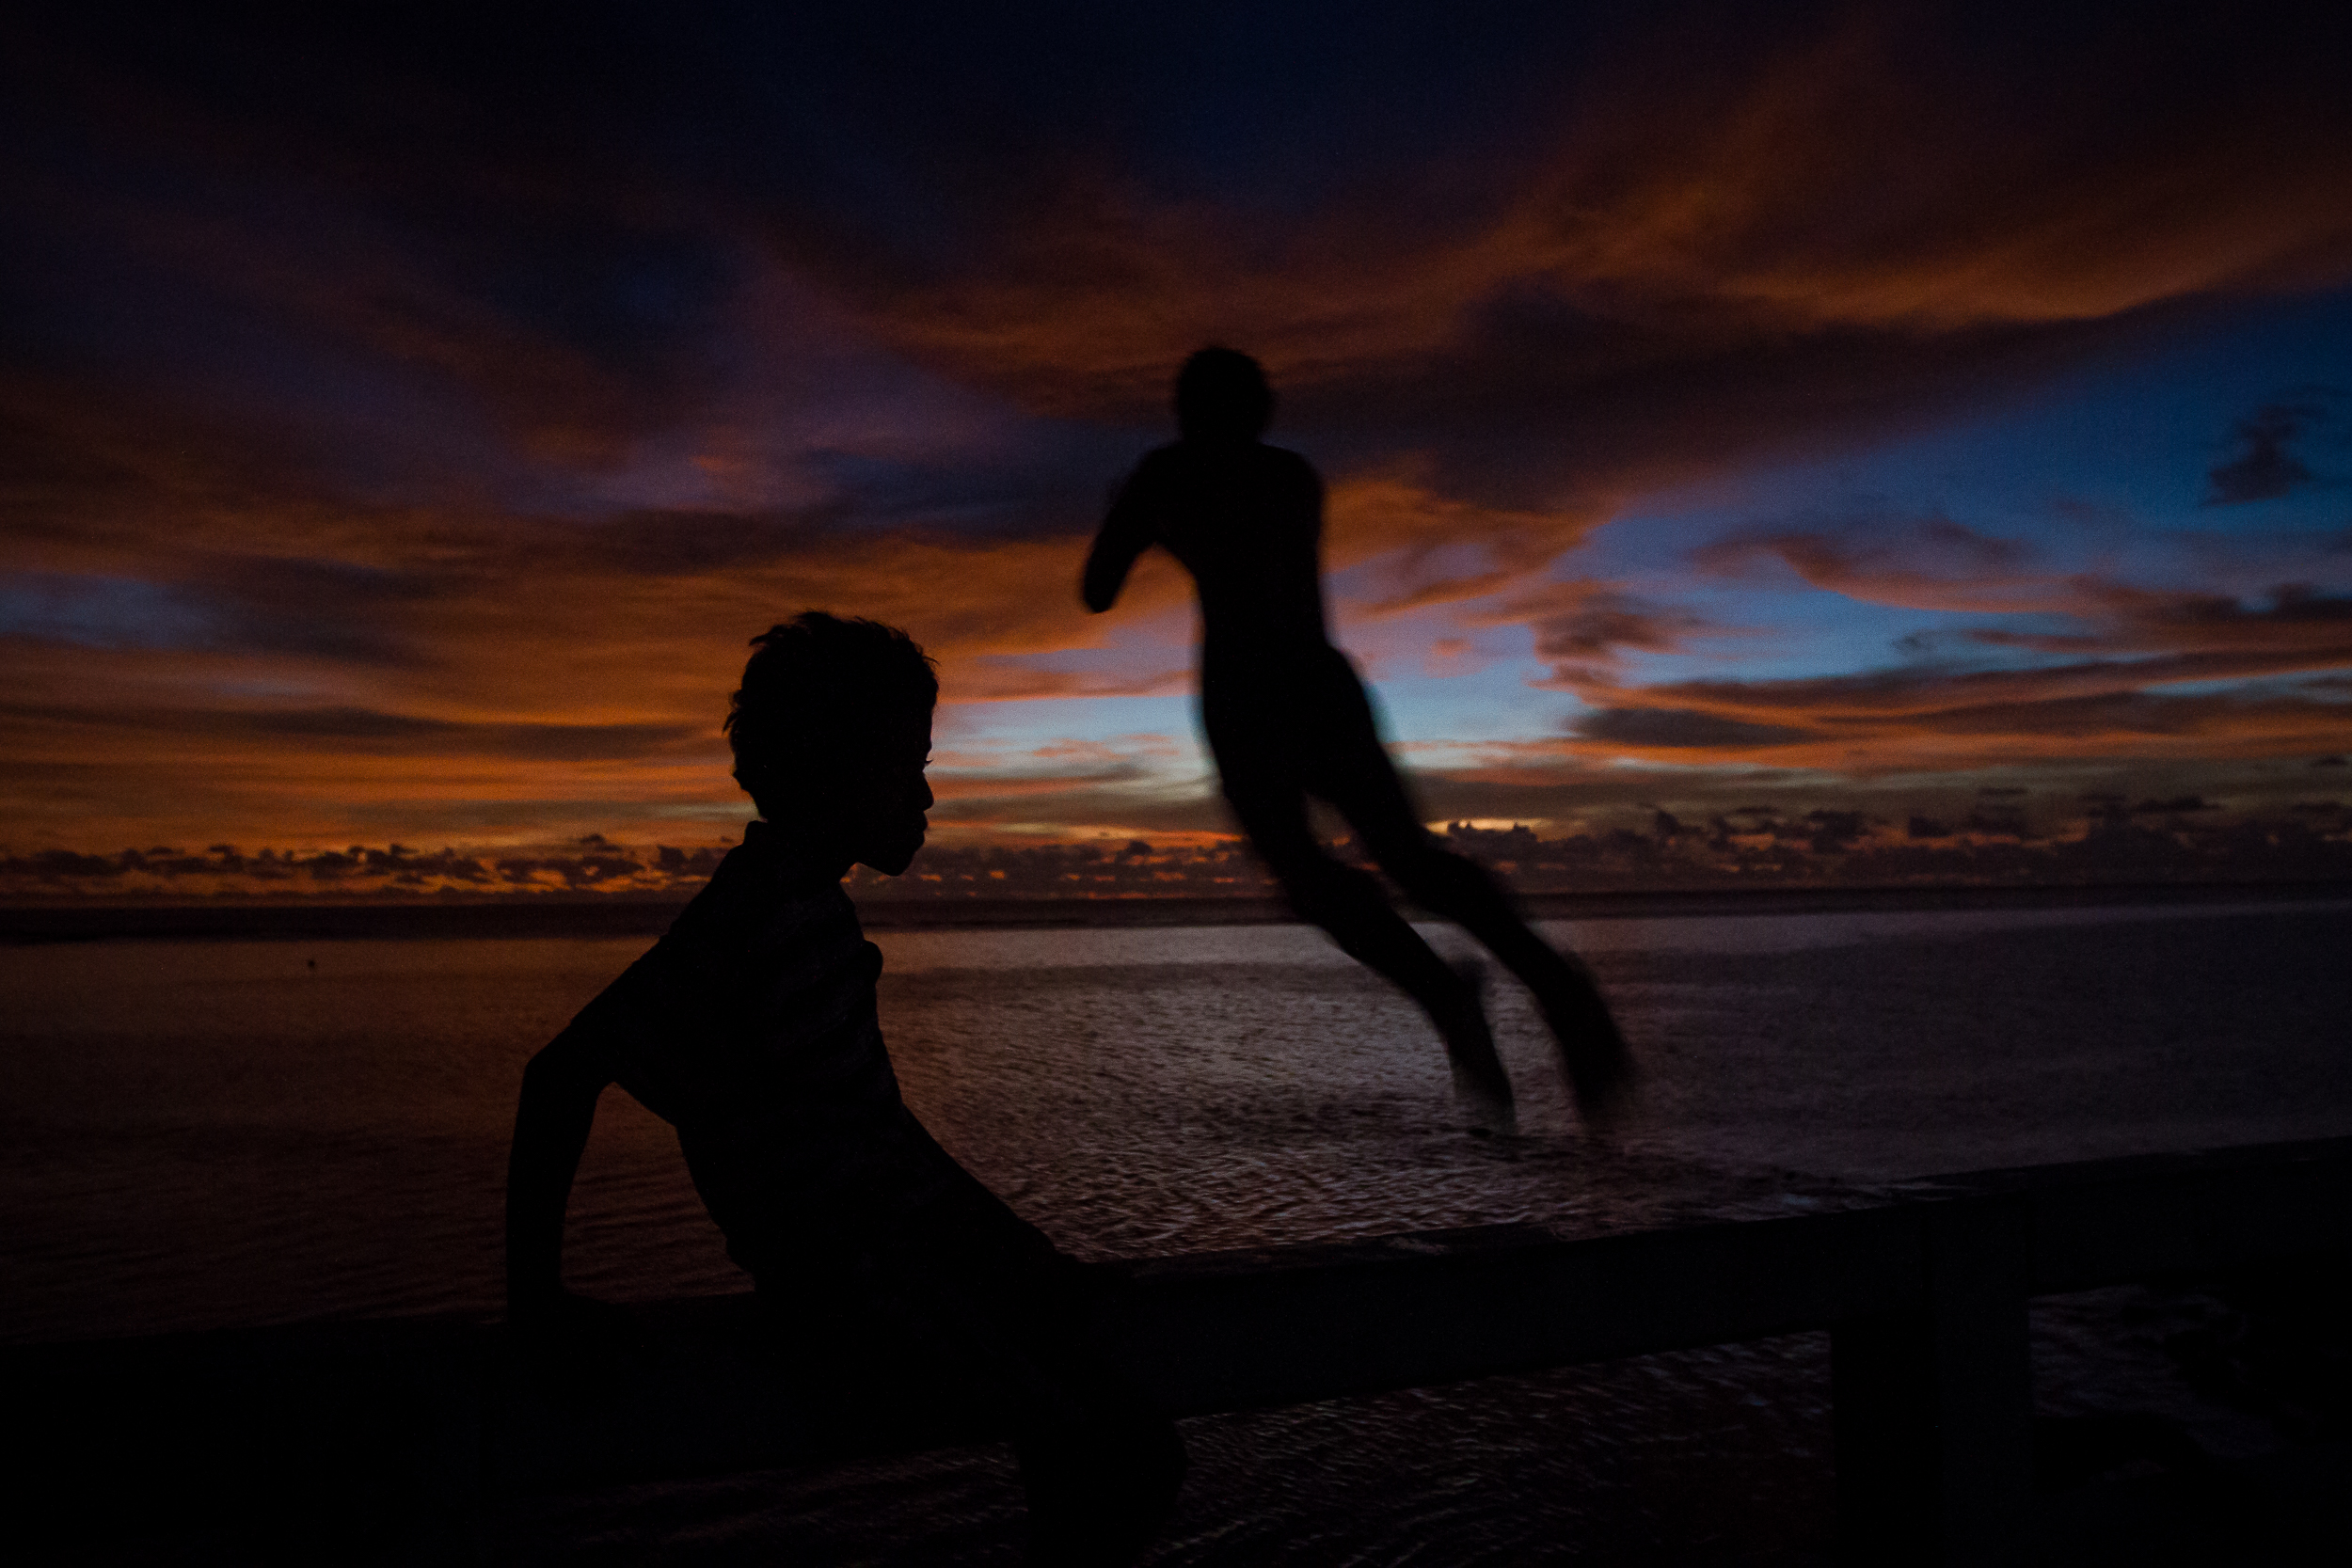 As the tide comes in and the sun sets, a young boy gets in one final jump from a bridge in Tarawa. Without a similar Compact to ensure free passage to another country, the Kiribati people have no idea where they would end up should their country become unliveable in the coming years.